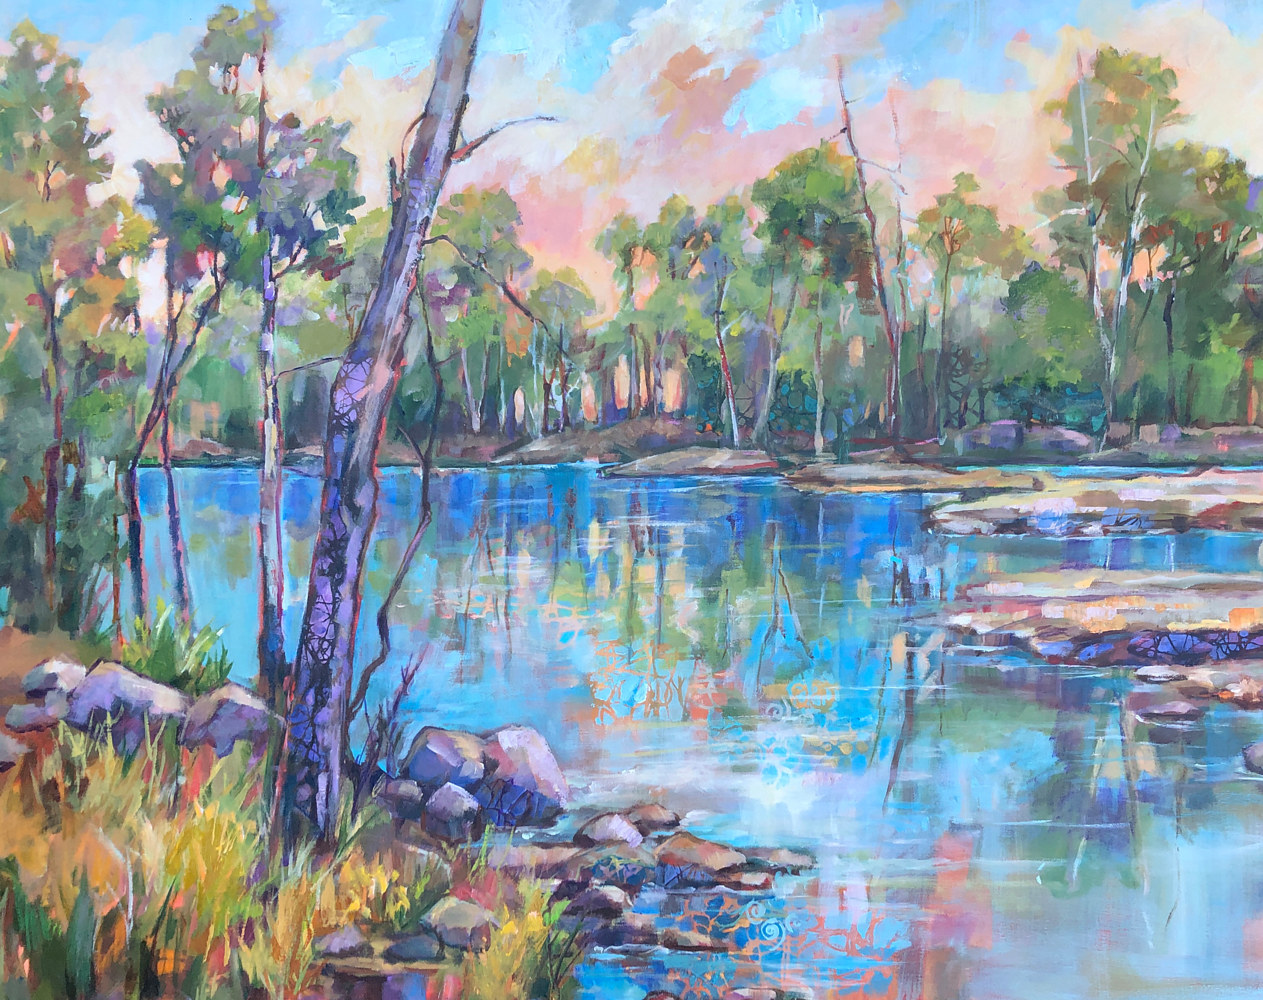 Acrylic painting DarbyCreek by Marty Husted